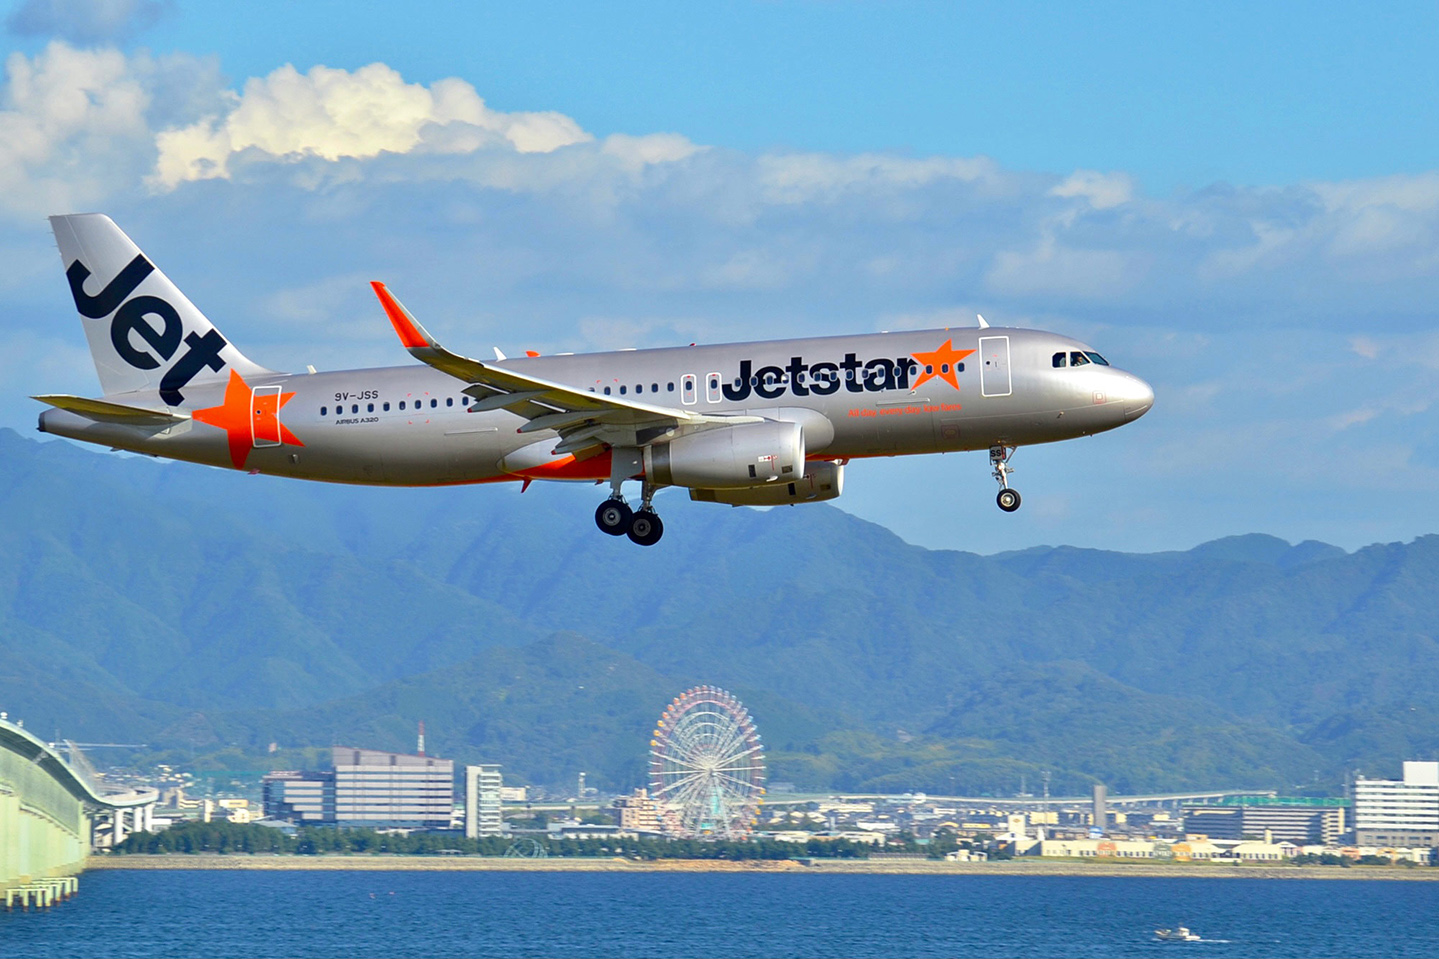 Jetstar increases Singapore network, secures Changi transit approval